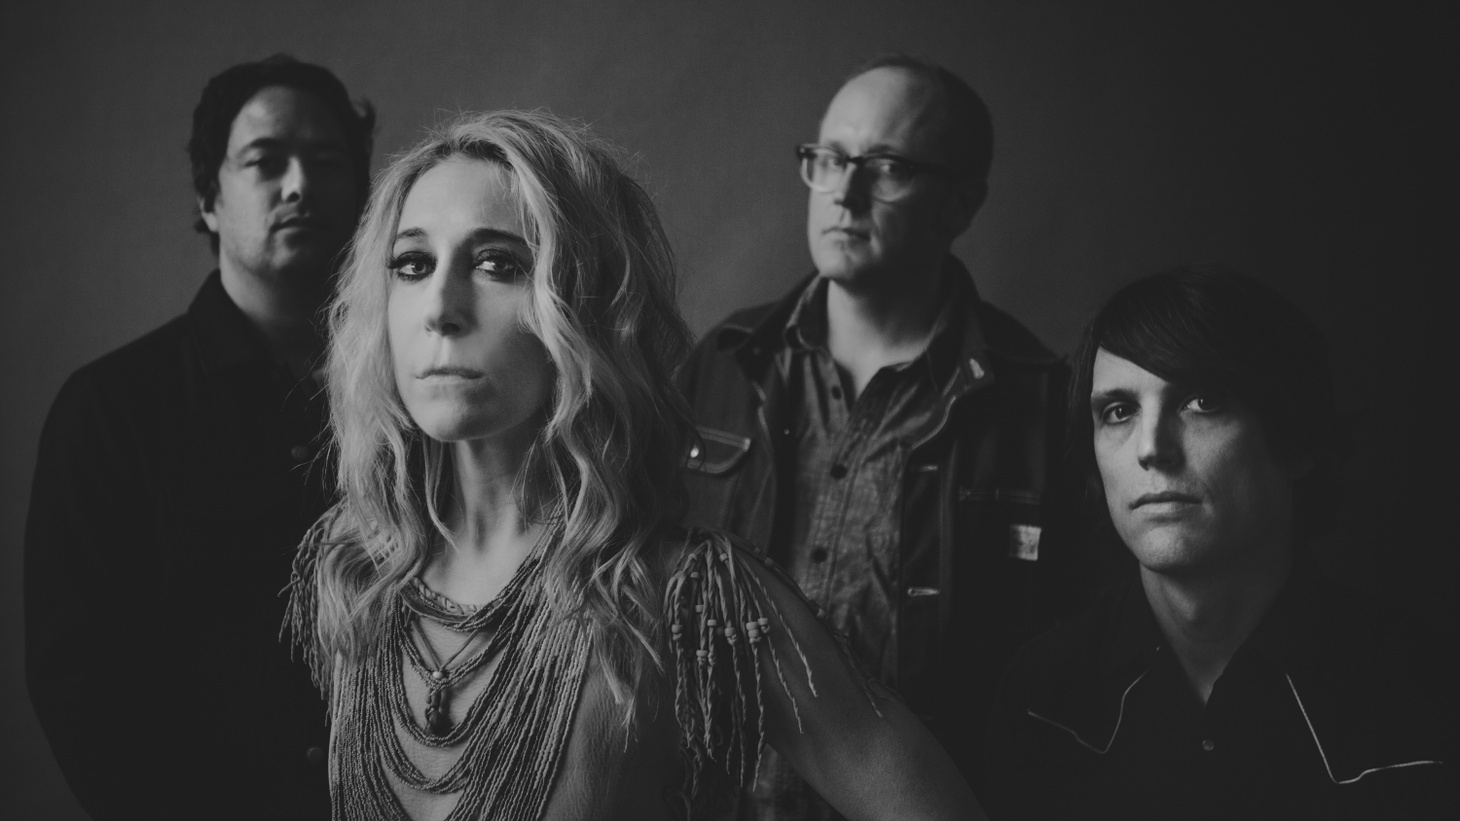 Austin's Heartless Bastards have been on the road for most of their career. Their new album blazes a new path of shifting moods and seasoned songwriting, all driven by Erika Wennerstrom's powerful vocals.